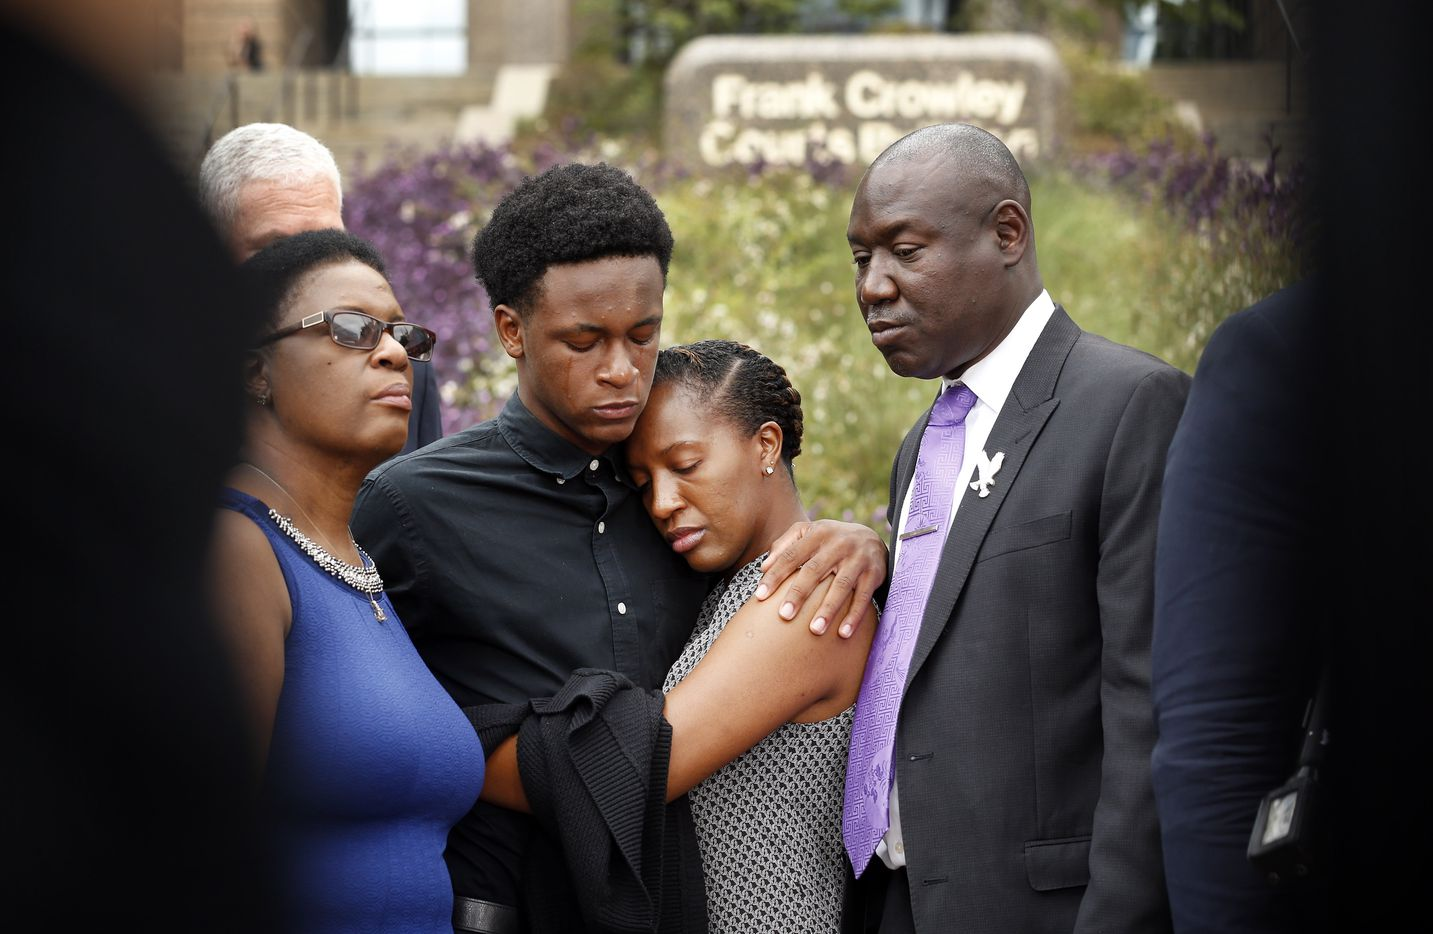 Brandt Jean, brother of shooting victim Botham Jean (second from left), hugs his sister Allisa Findley during a press conference outside the Frank Crowley Courts Building in reference to the shooting of Jean by Dallas police officer Amber Guyger, Monday, September 10, 2018. He was joined by his mother, Allison Jean (left) and attorney Benjamin Crump (right).